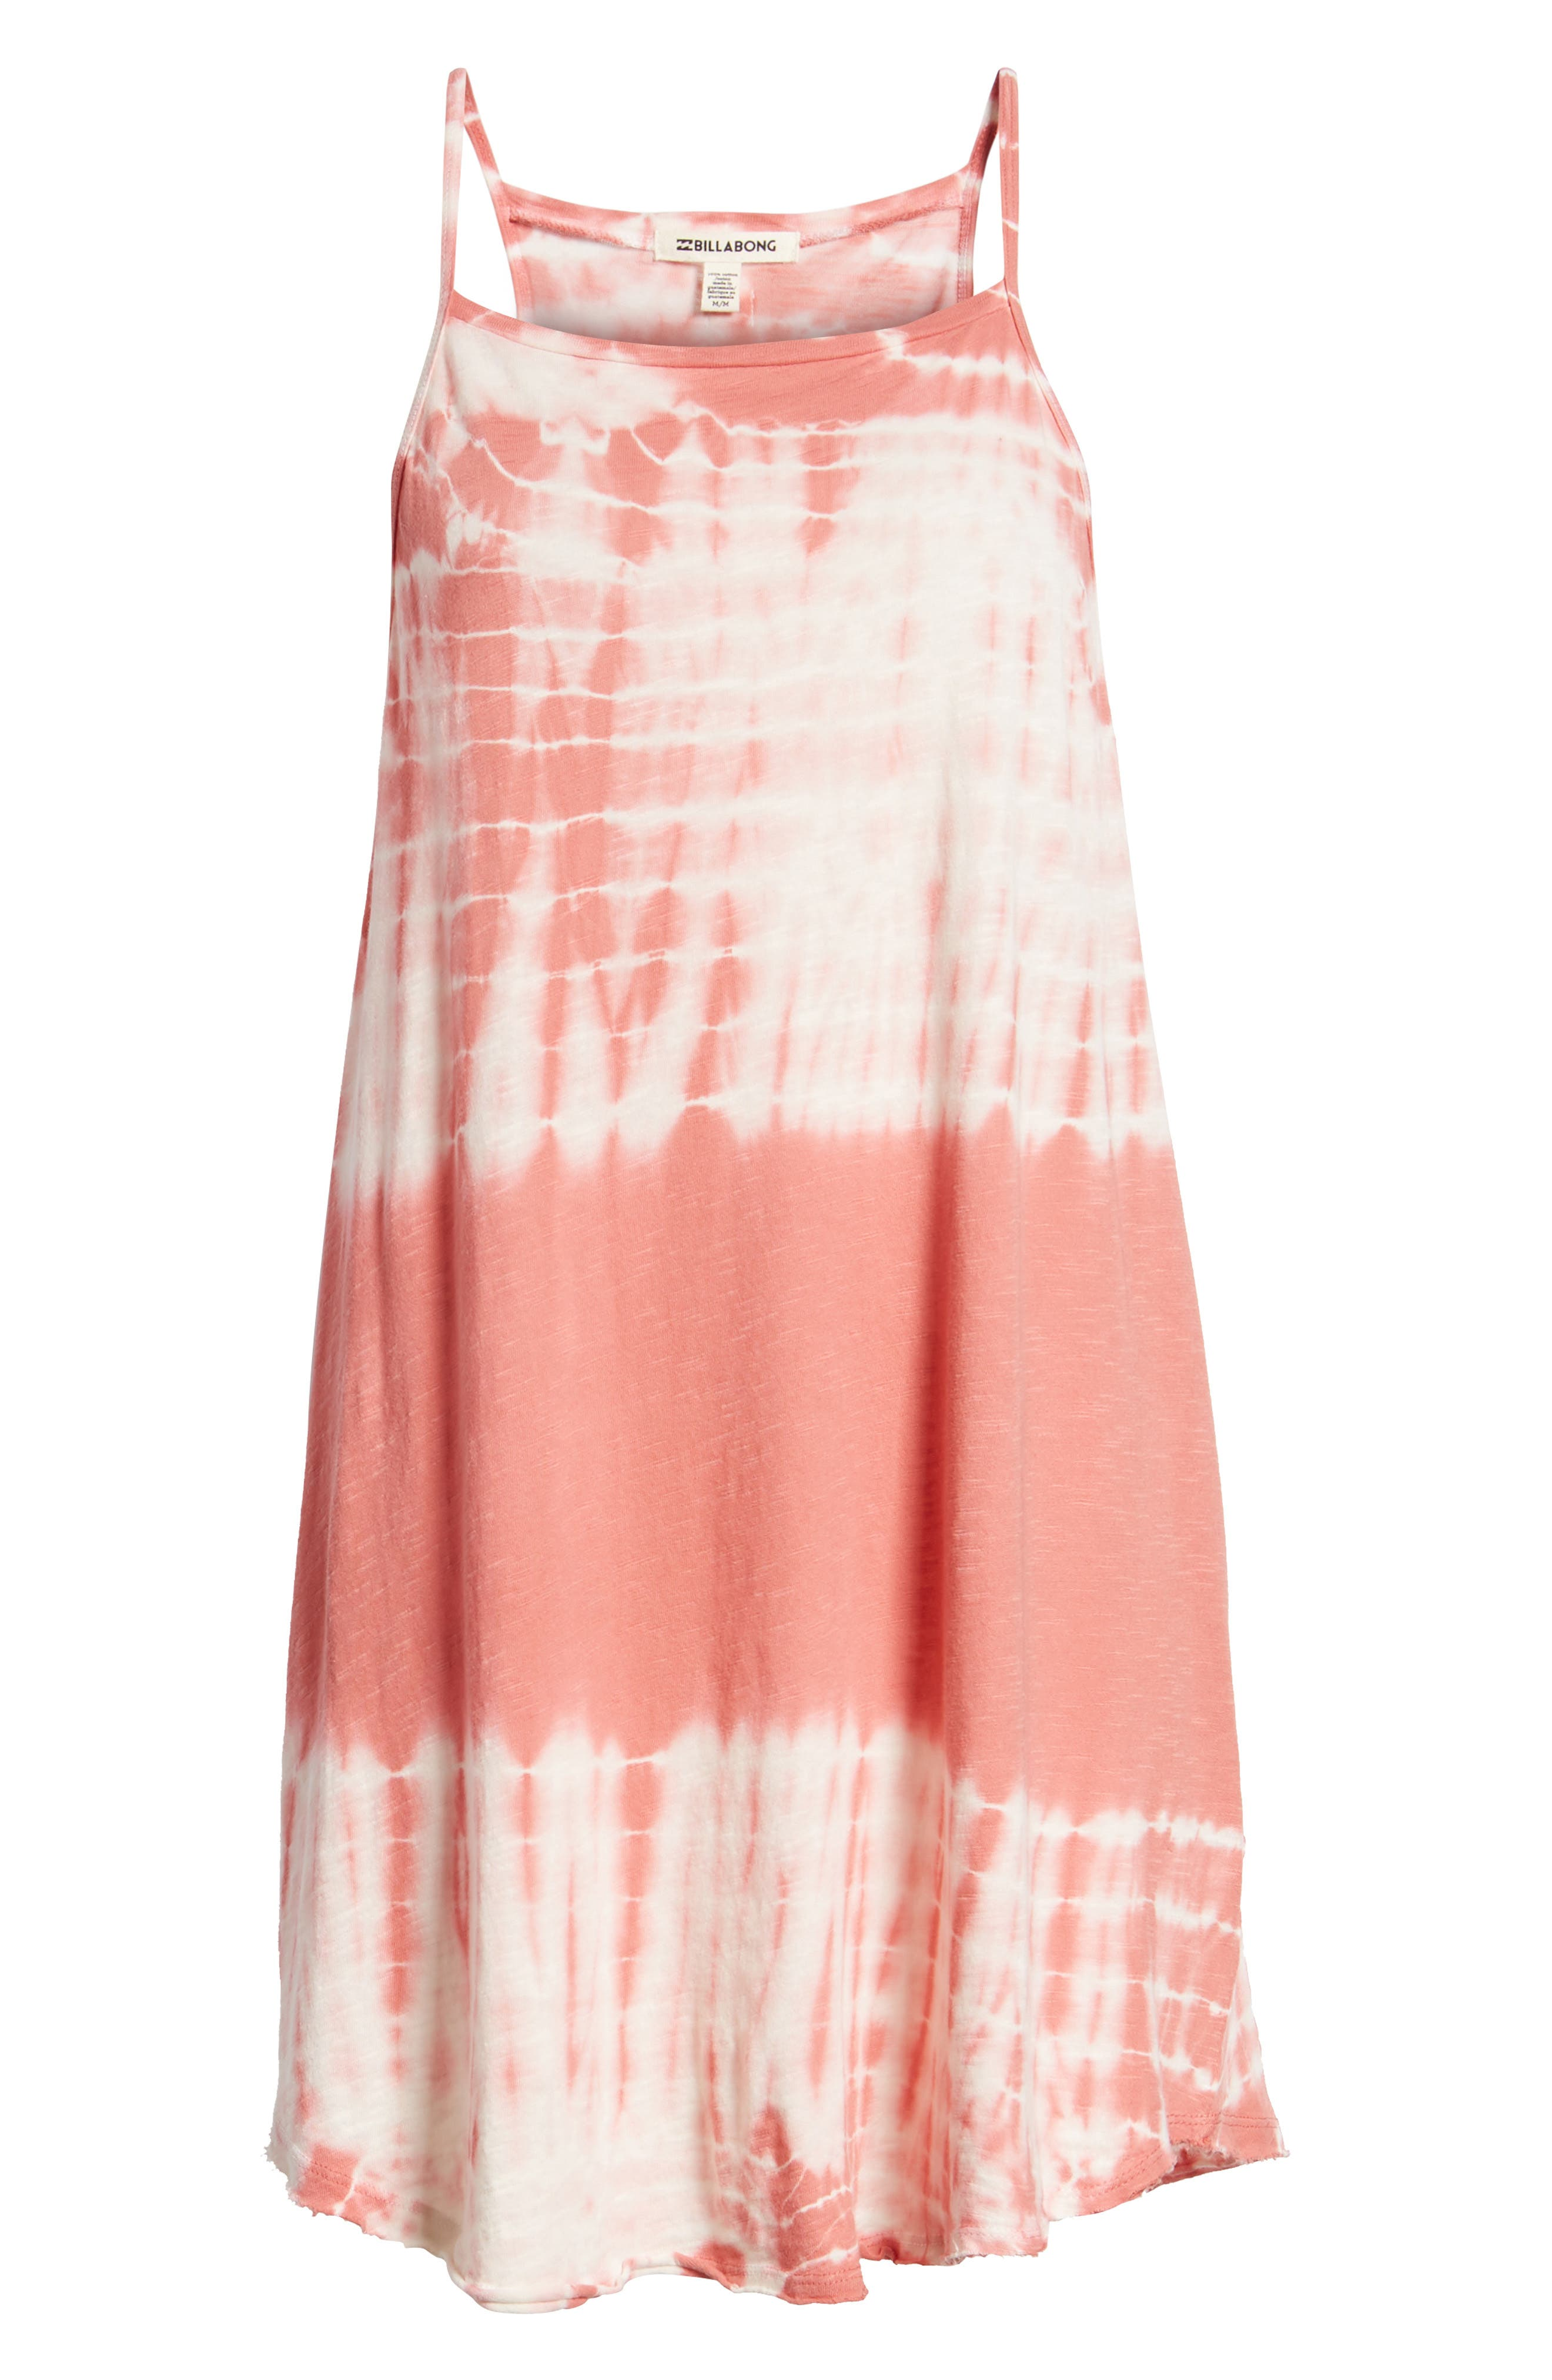 Turn Away Tie Dye Dress,                         Main,                         color, Sunburnt